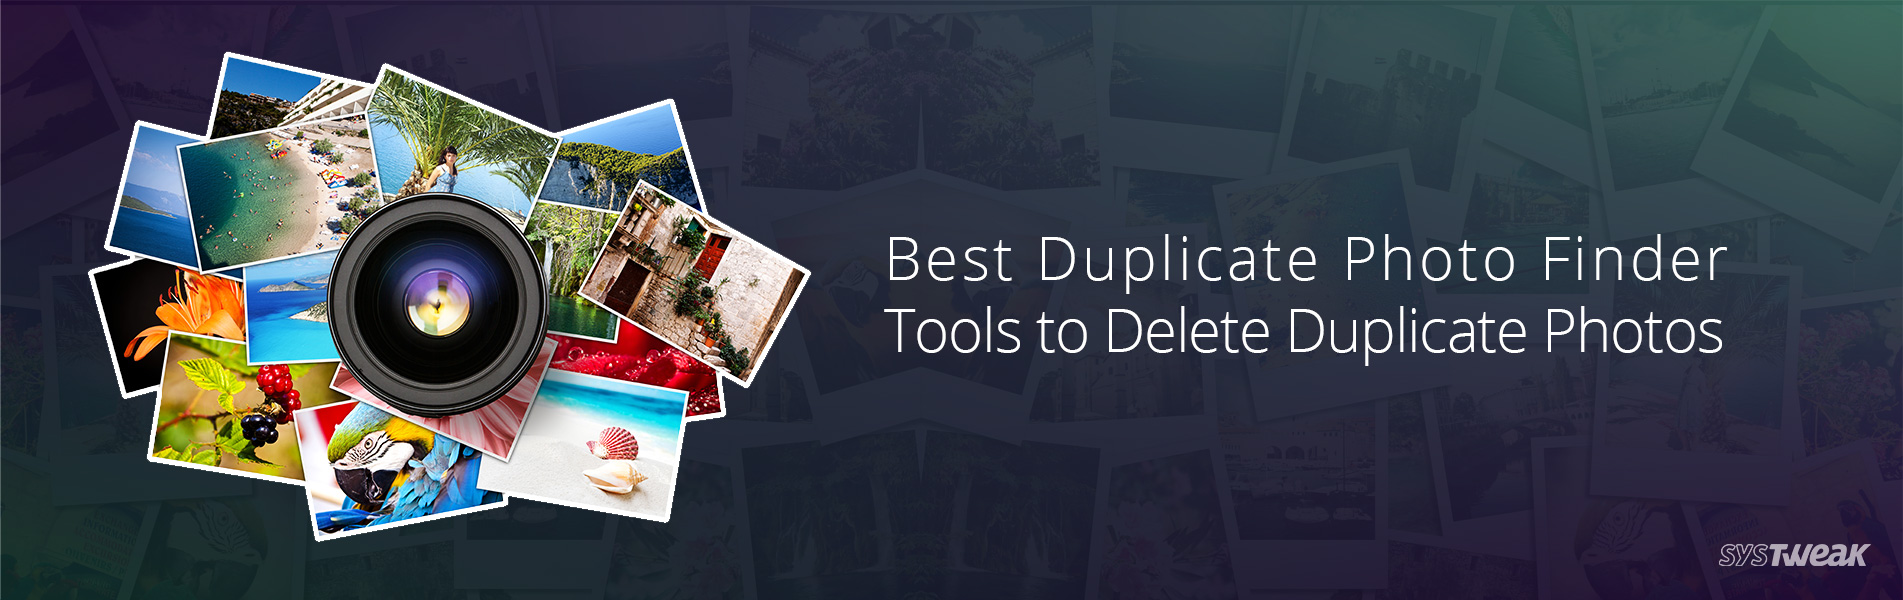 5 Best Duplicate Photo Finder & Remover Tools to Delete